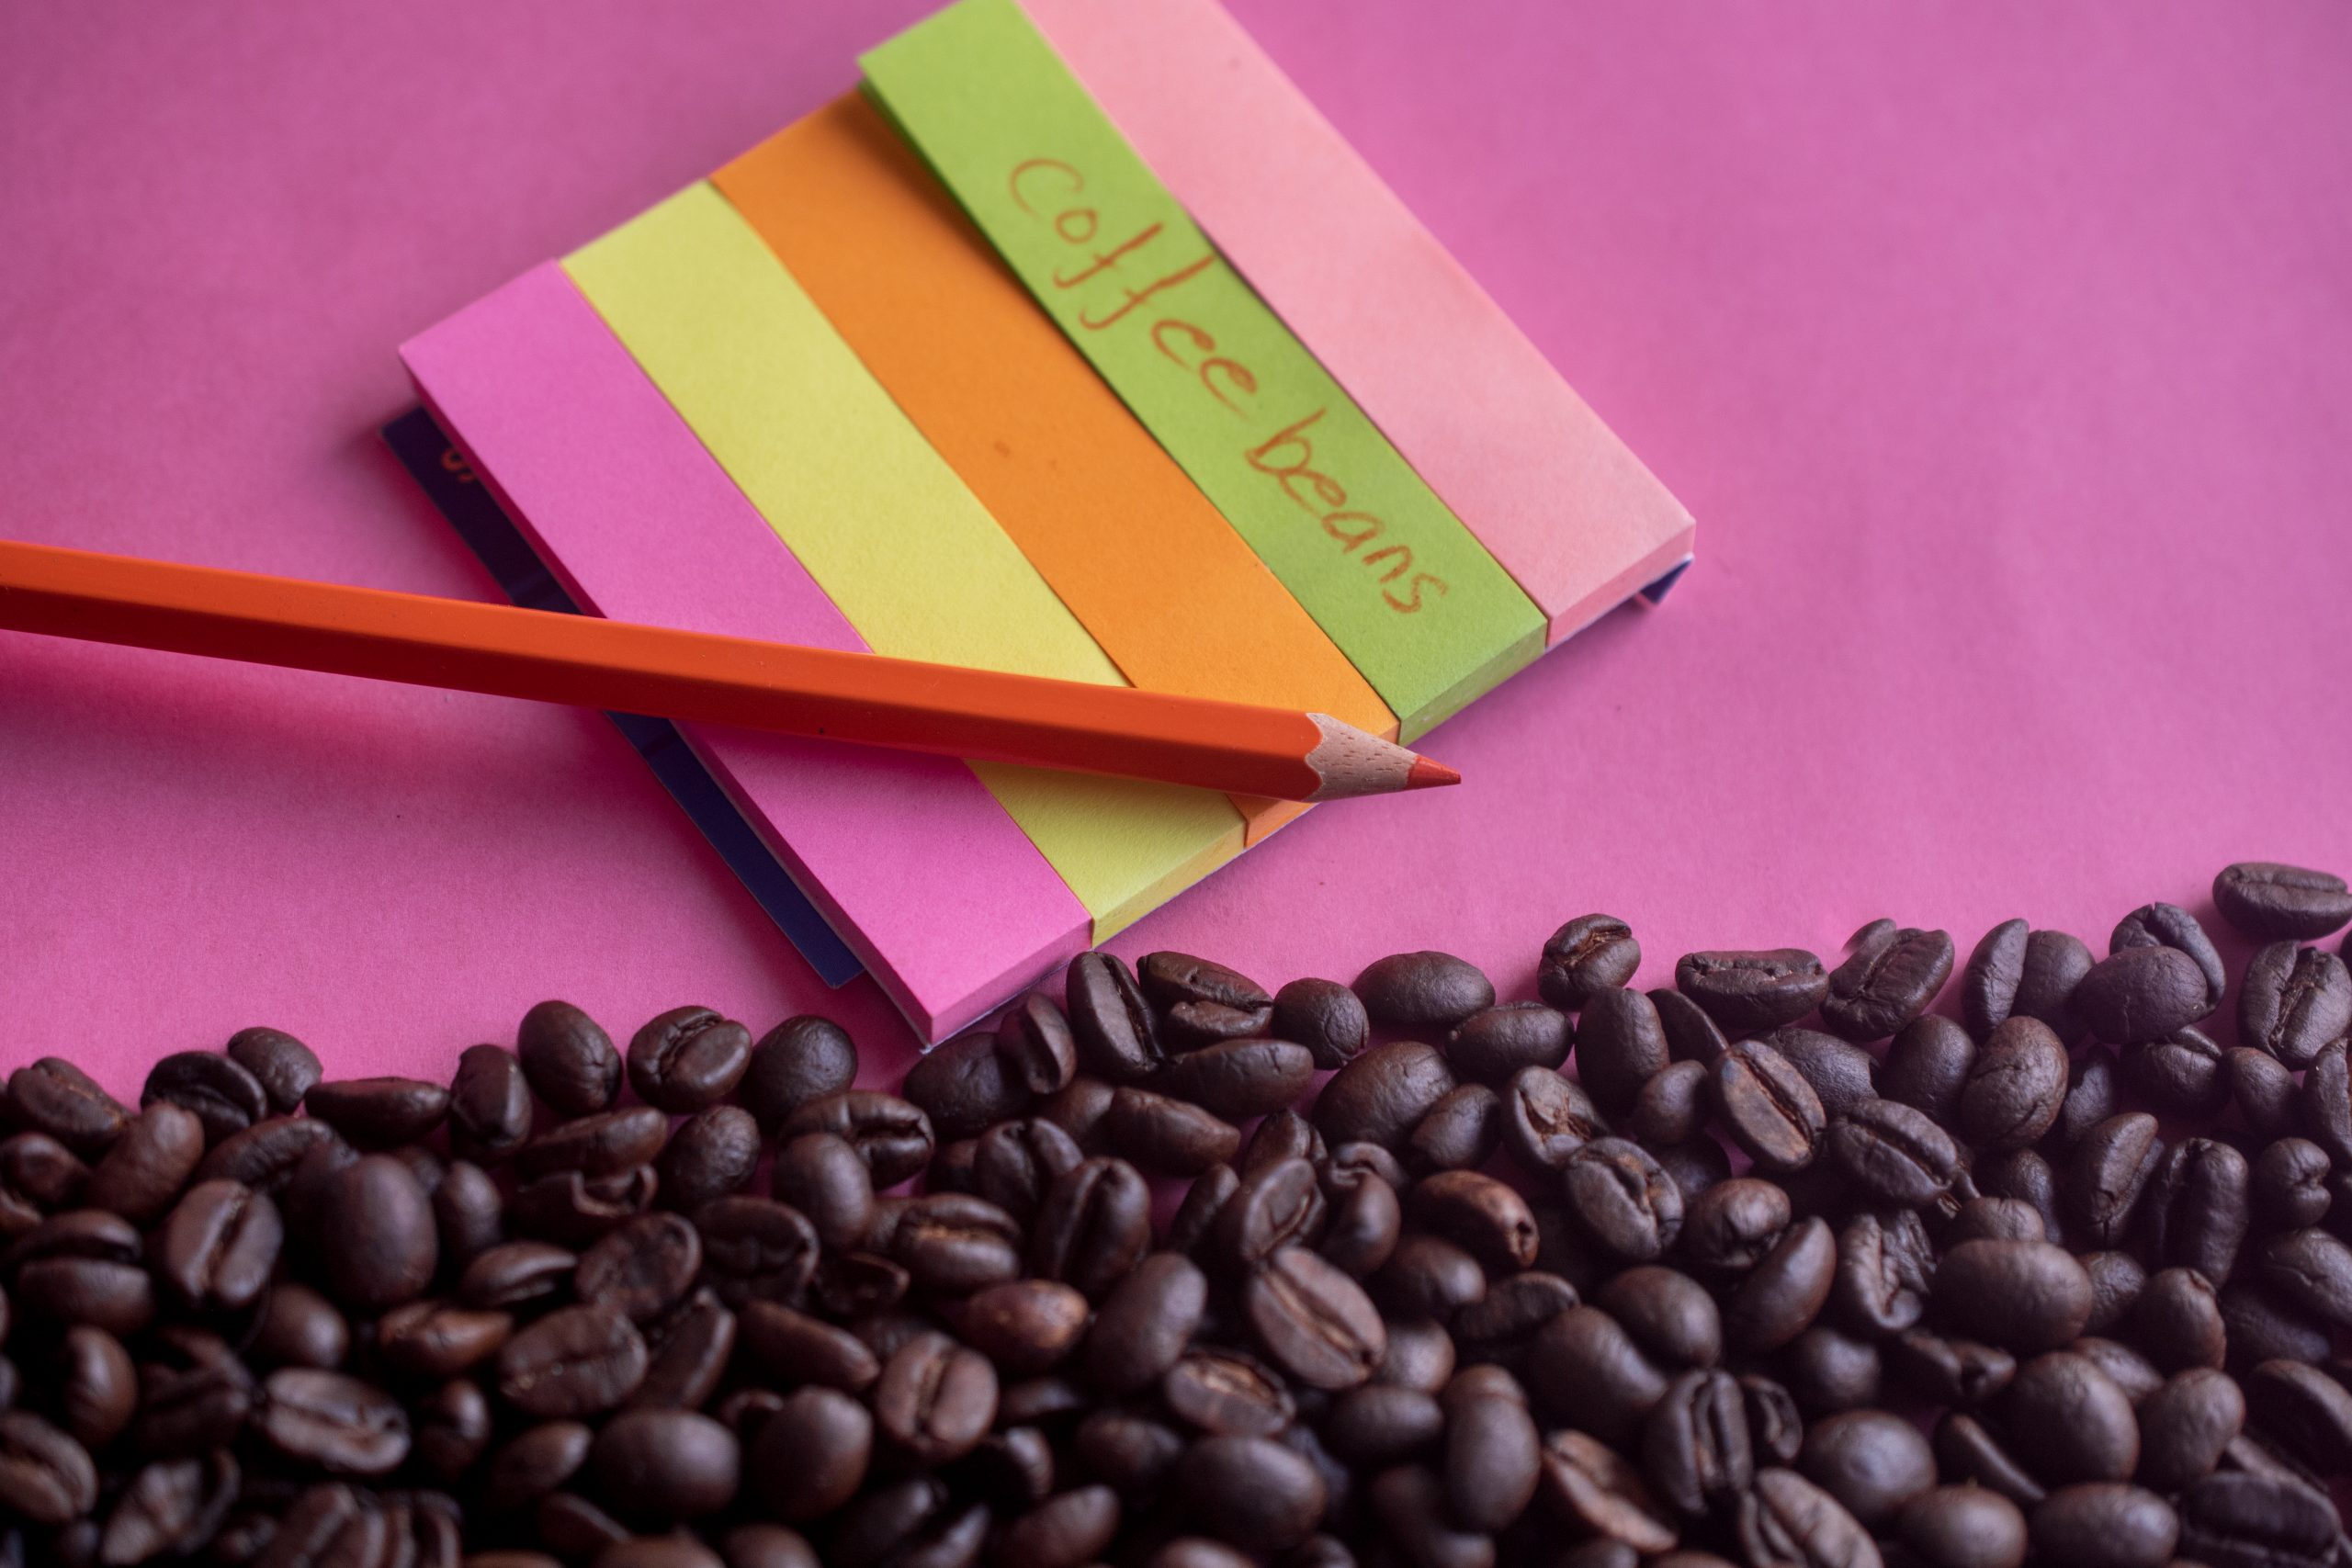 Coffee beans and paper tag